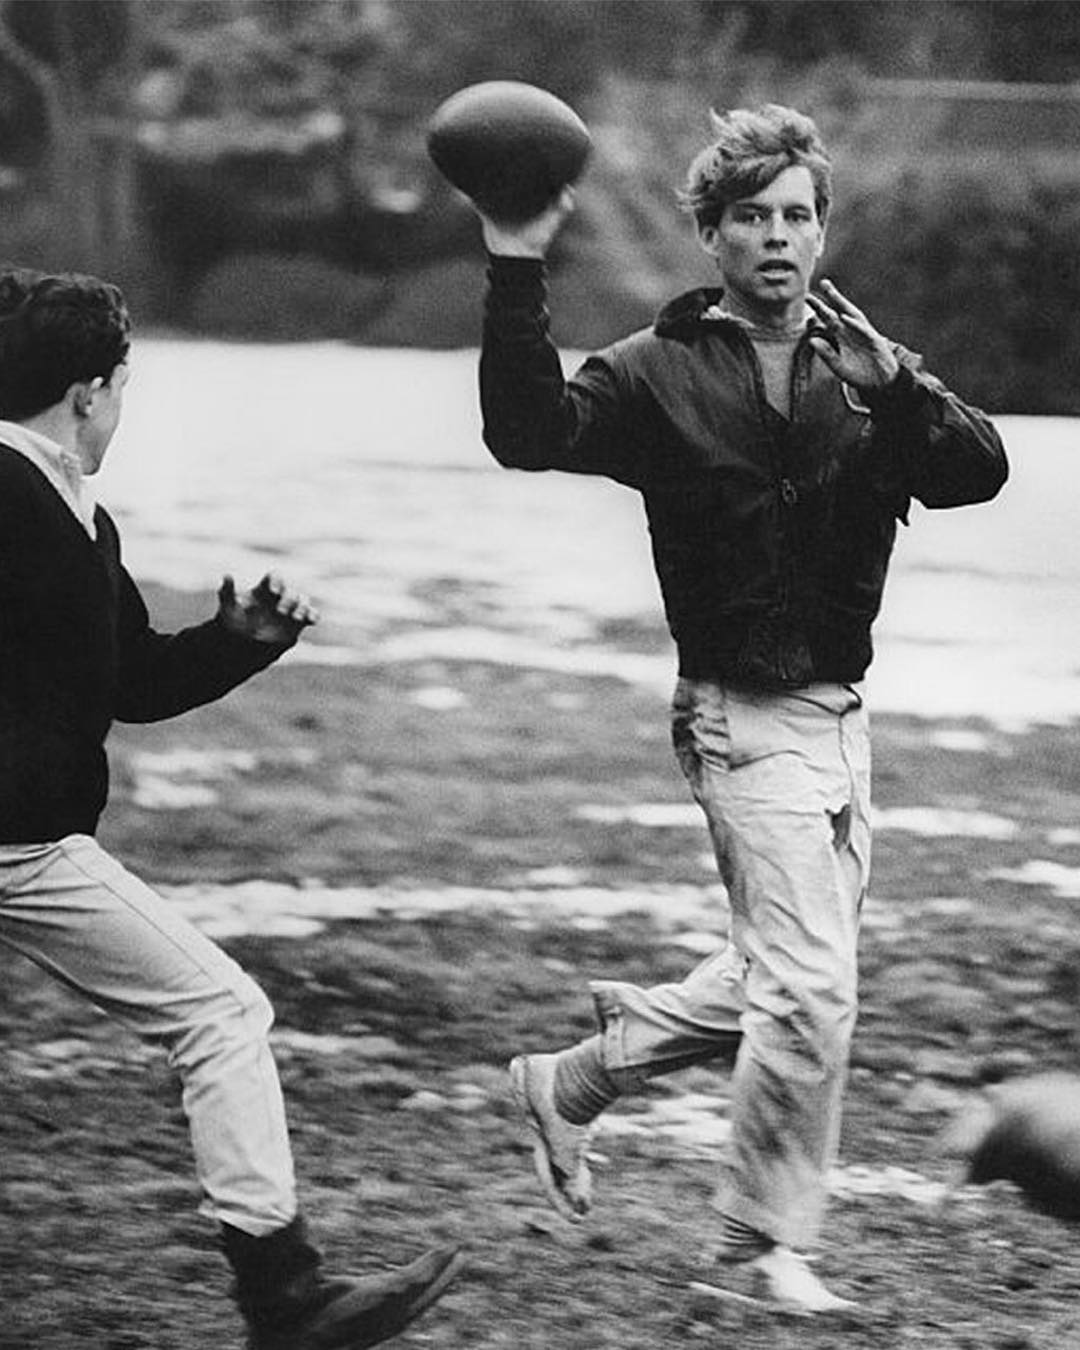 """""""All of us might wish at times that we lived in a more tranquil world, but we don't. And if our times are difficult and perplexing, so are they challenging and filled with opportunity."""" — #RFK. (📷: Steve Schapiro, 1967) #RobertKennedy #RIP"""